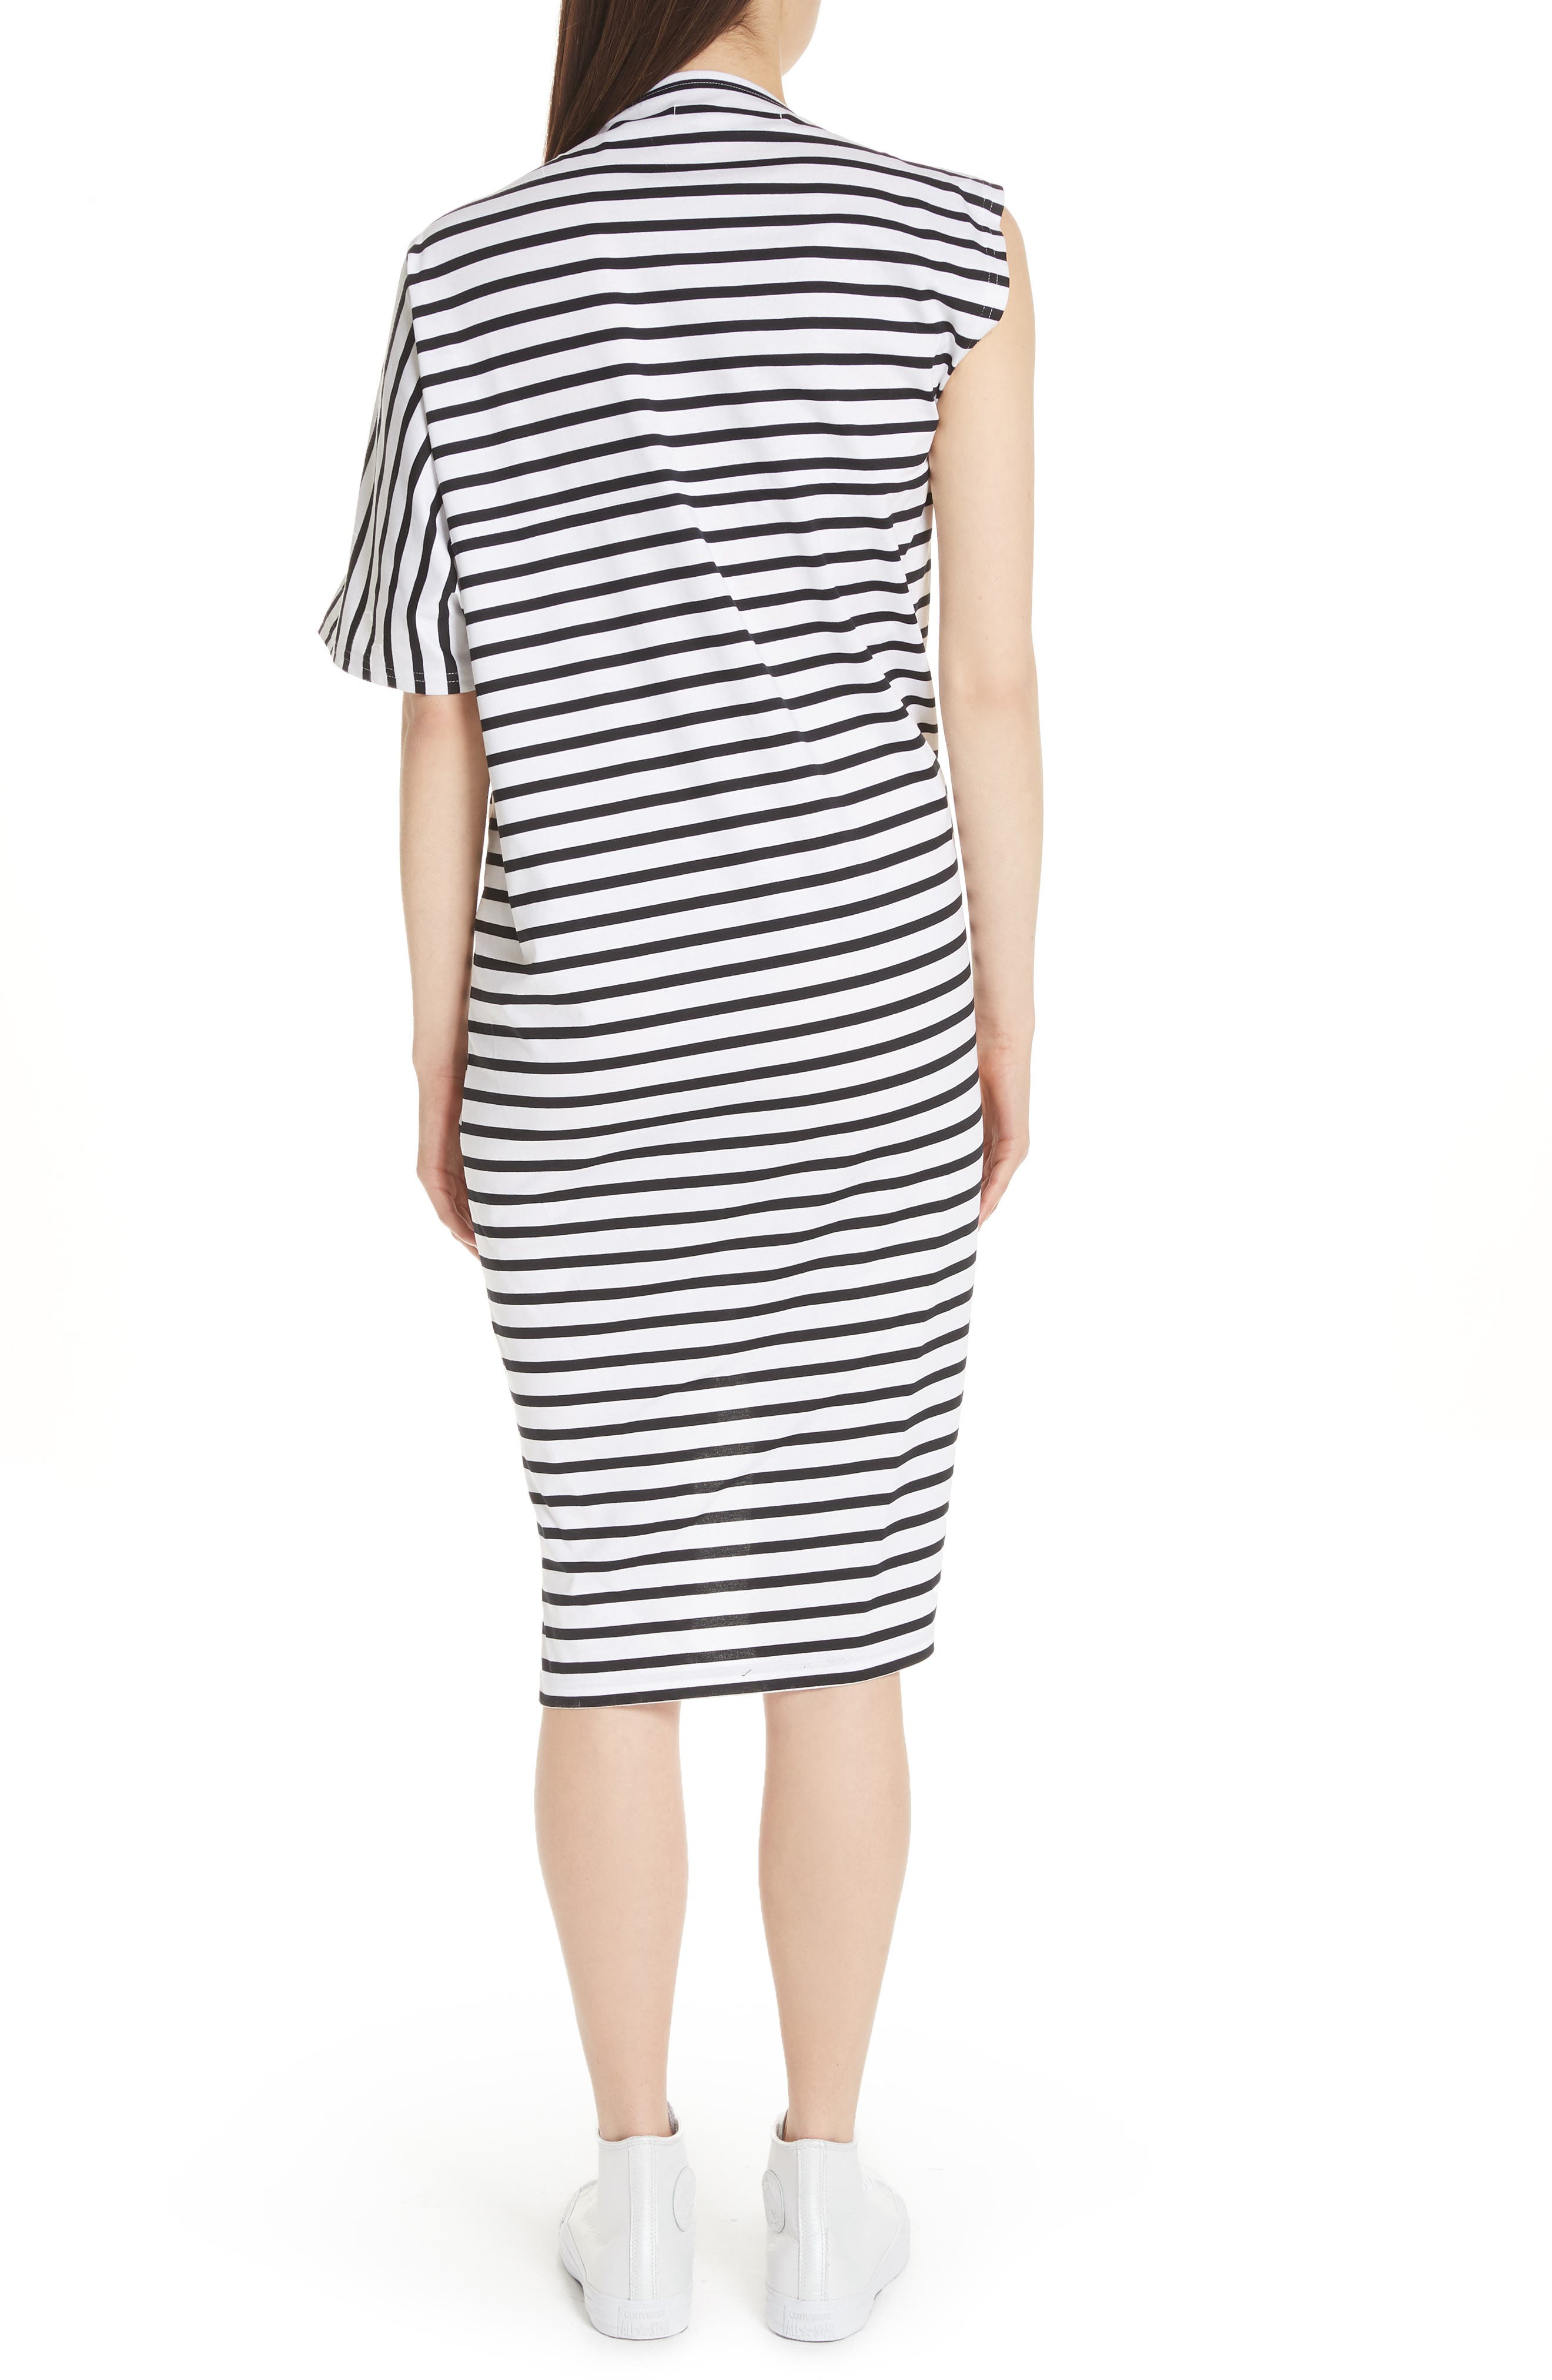 Asymmetrical Stripe Dress,                             Alternate thumbnail 2, color,                             White/ Black